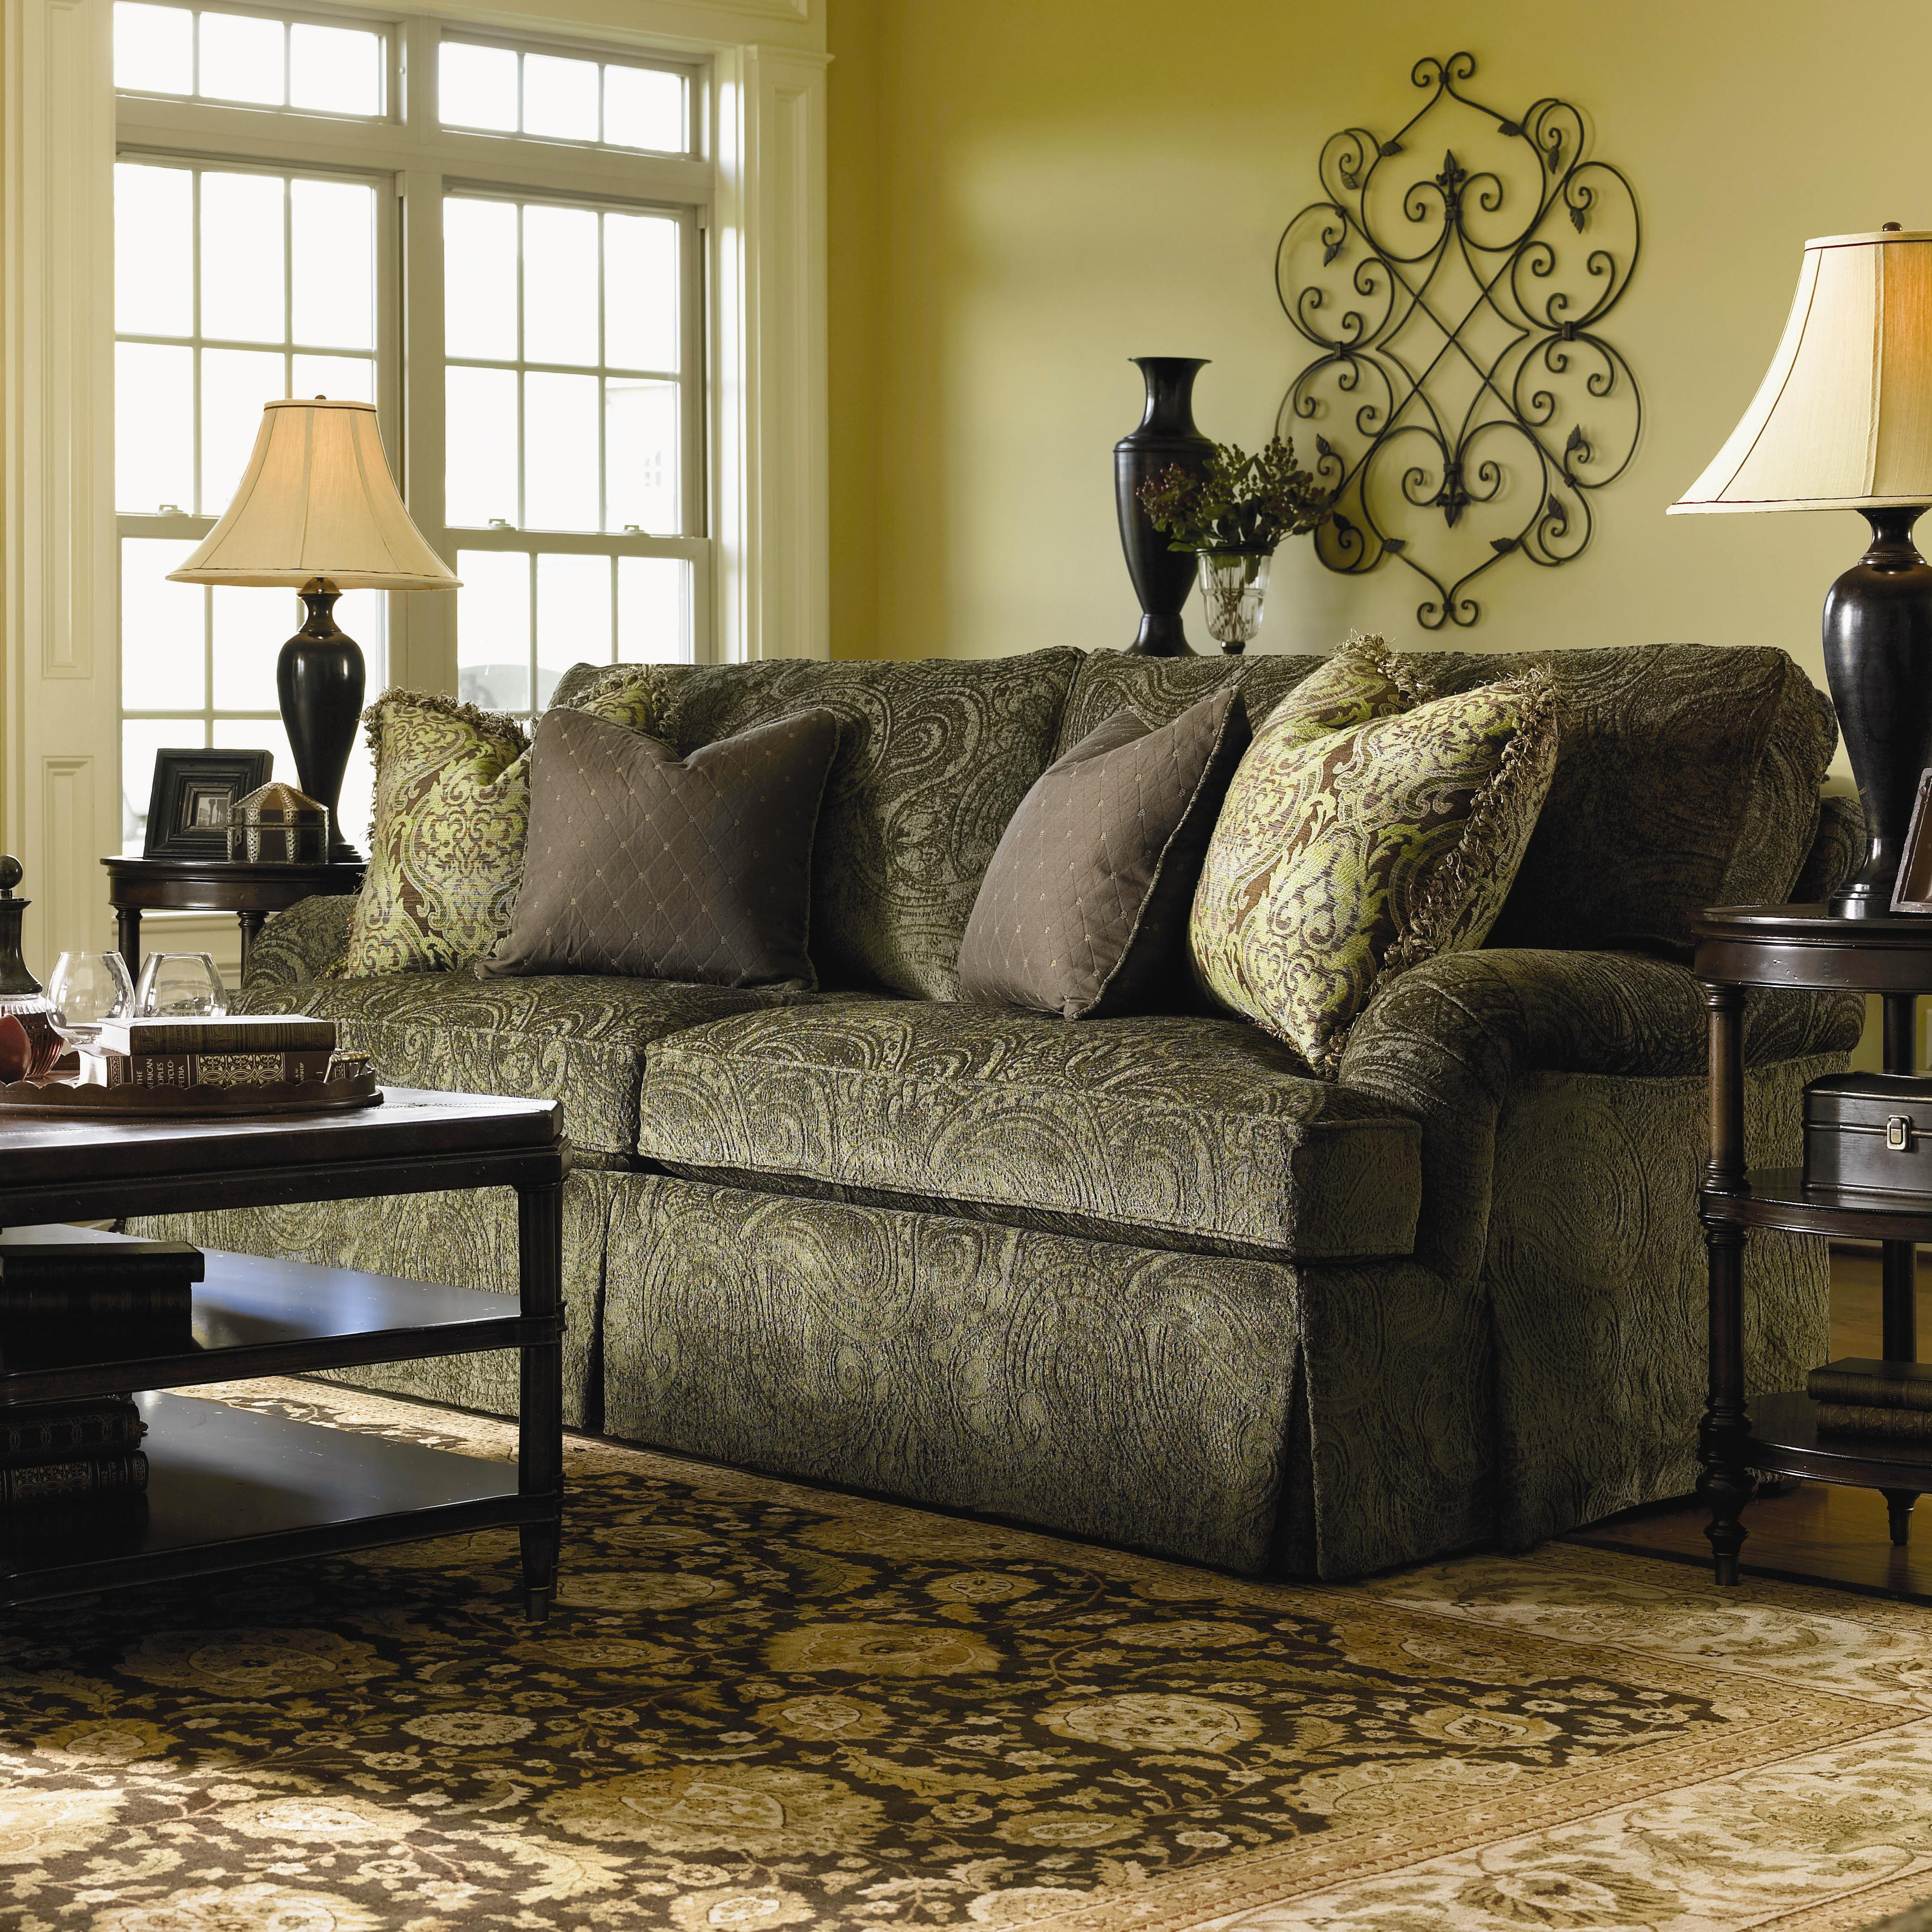 Lexington Personal Design Series Customizable Overland Sofa With English Arms And Kick Pleat